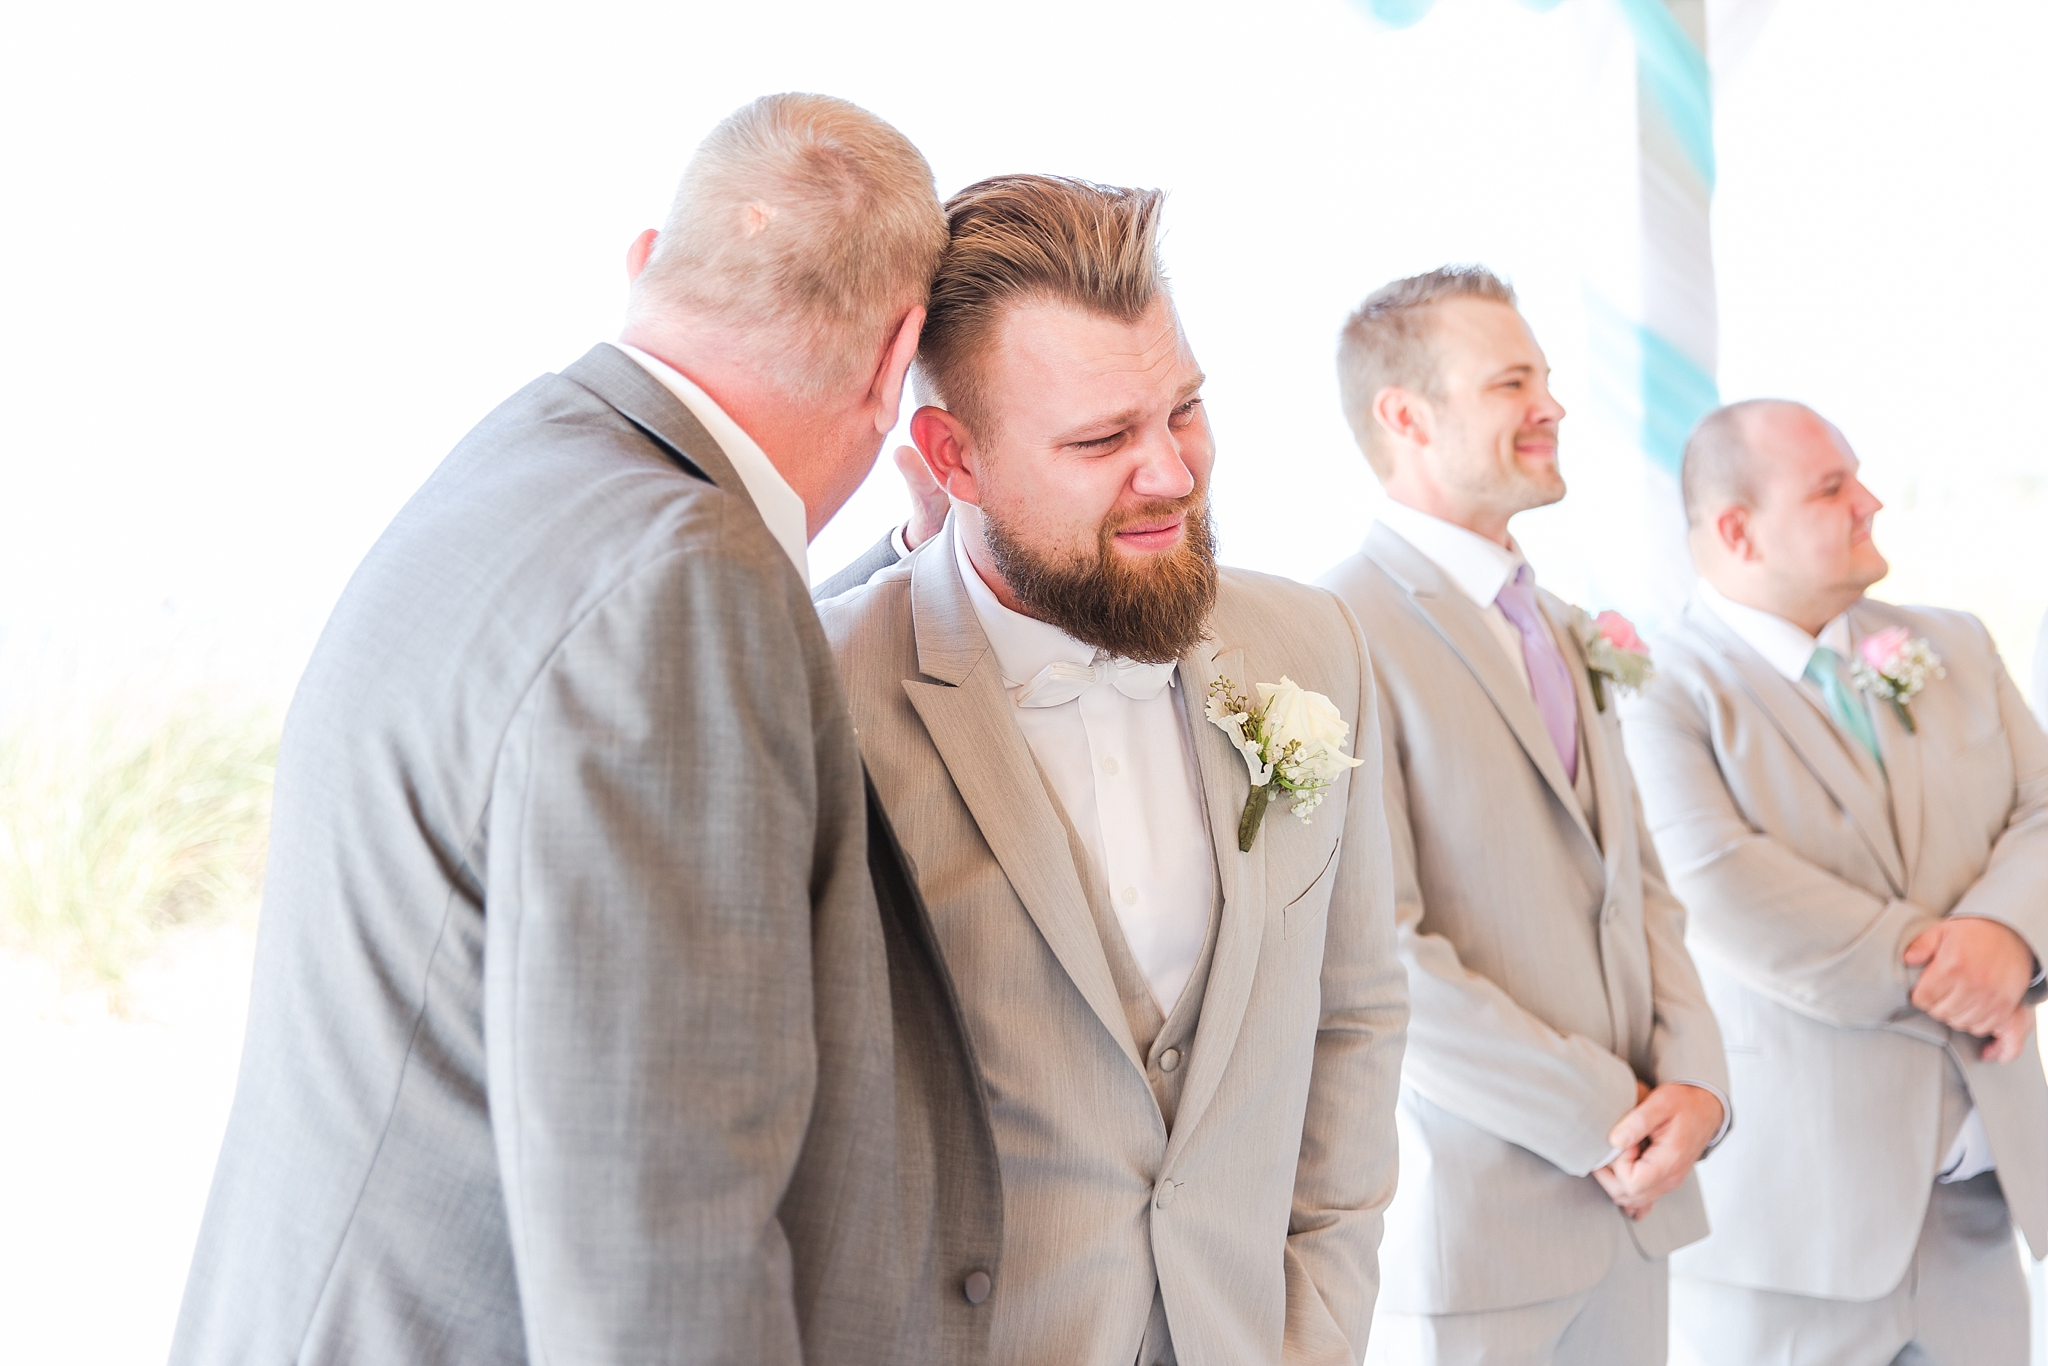 romantic-artful-candid-wedding-photos-in-detroit-lansing-ann-arbor-northern-michigan-and-chicago-by-courtney-carolyn-photography_0054.jpg